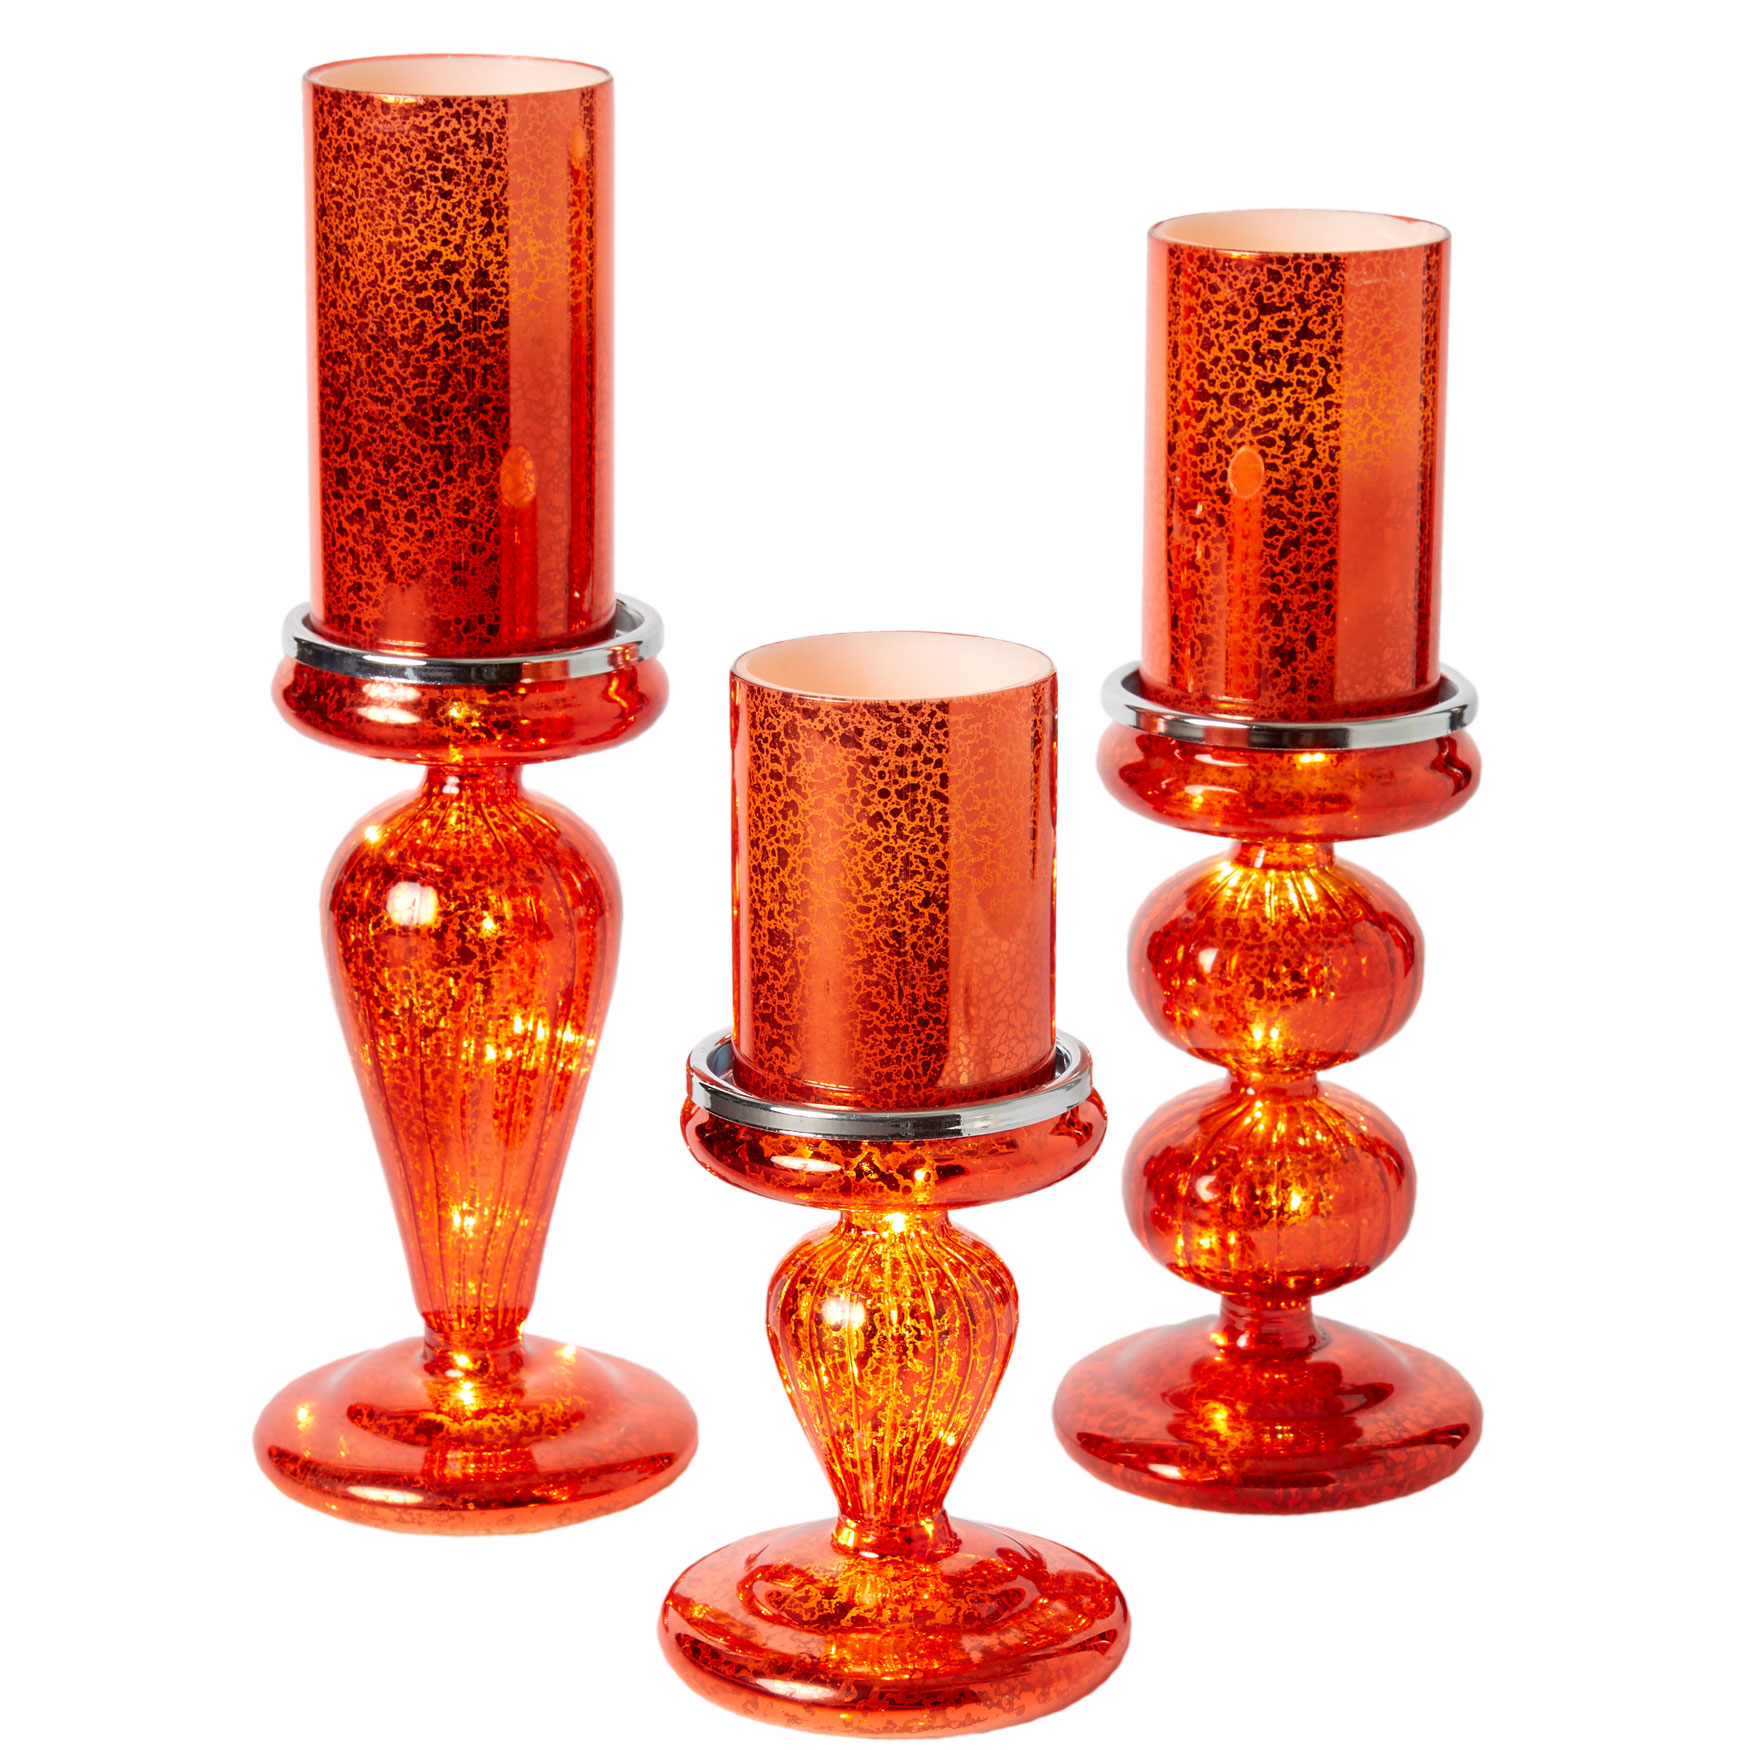 Set of 3 Candle Bases with LED Lights, RED